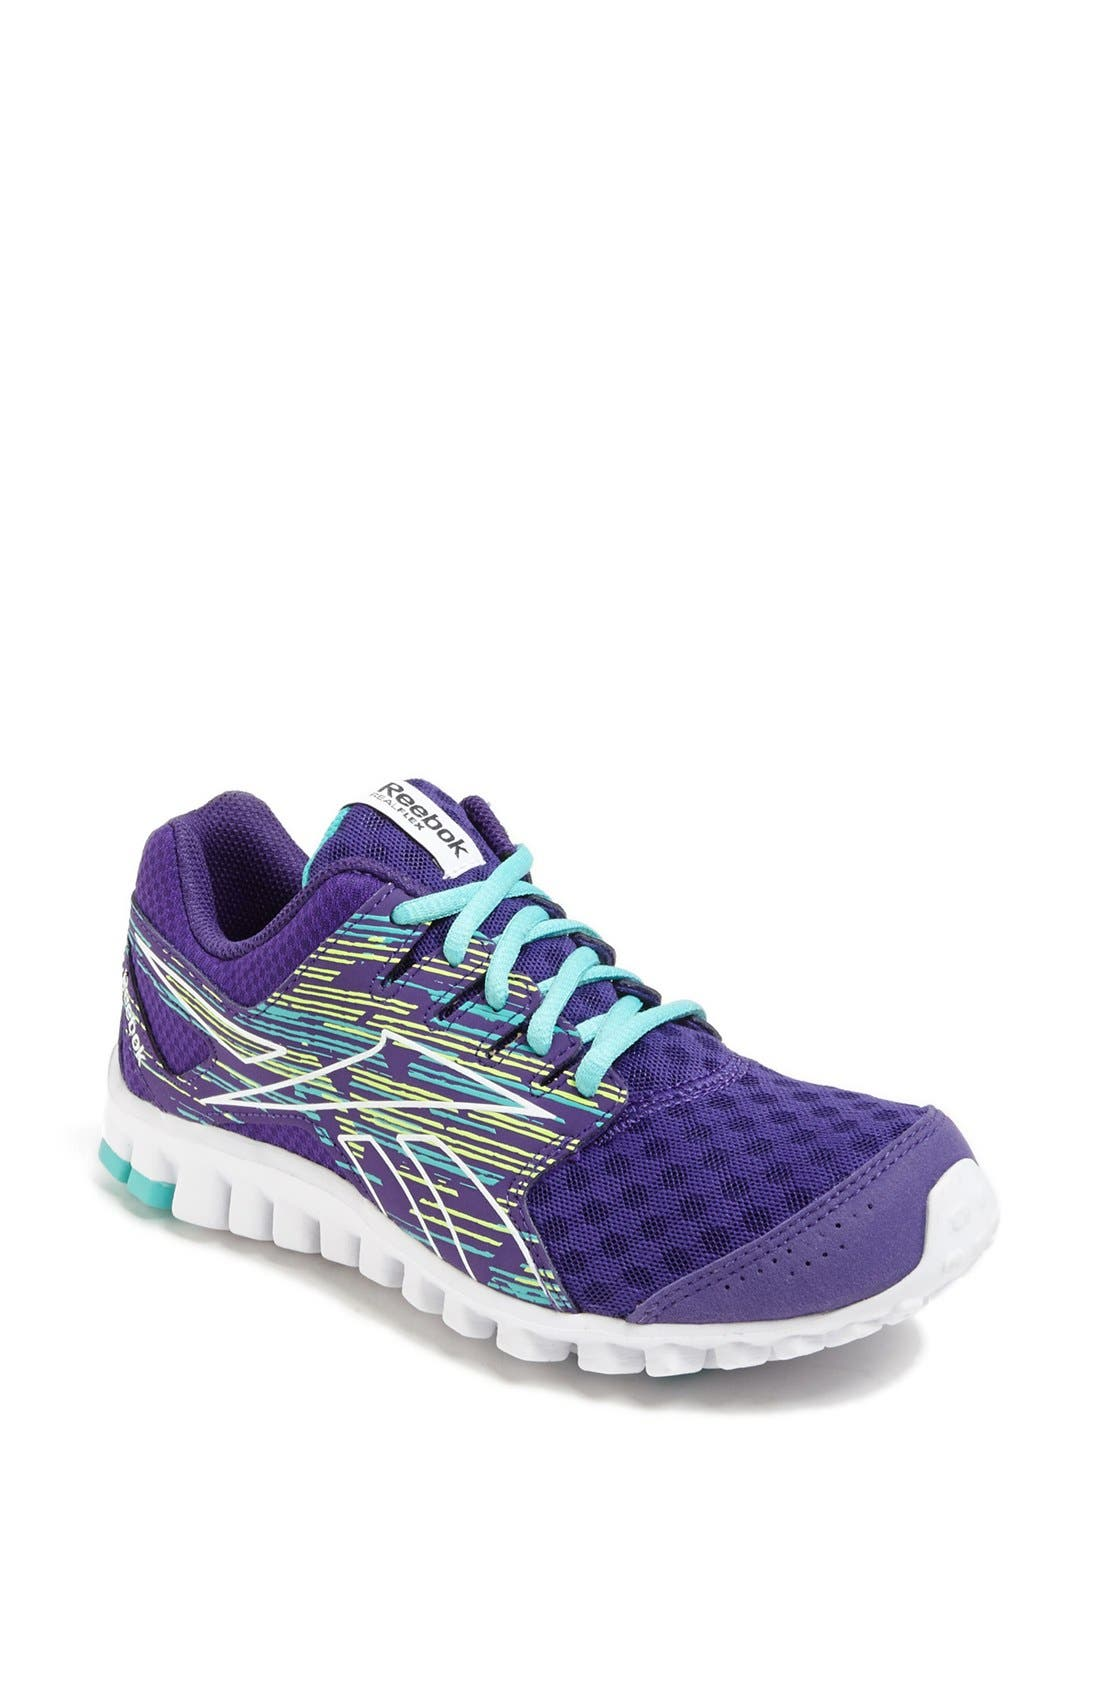 Alternate Image 1 Selected - Reebok 'RealFlex Scream 3.0' Running Shoe (Women)